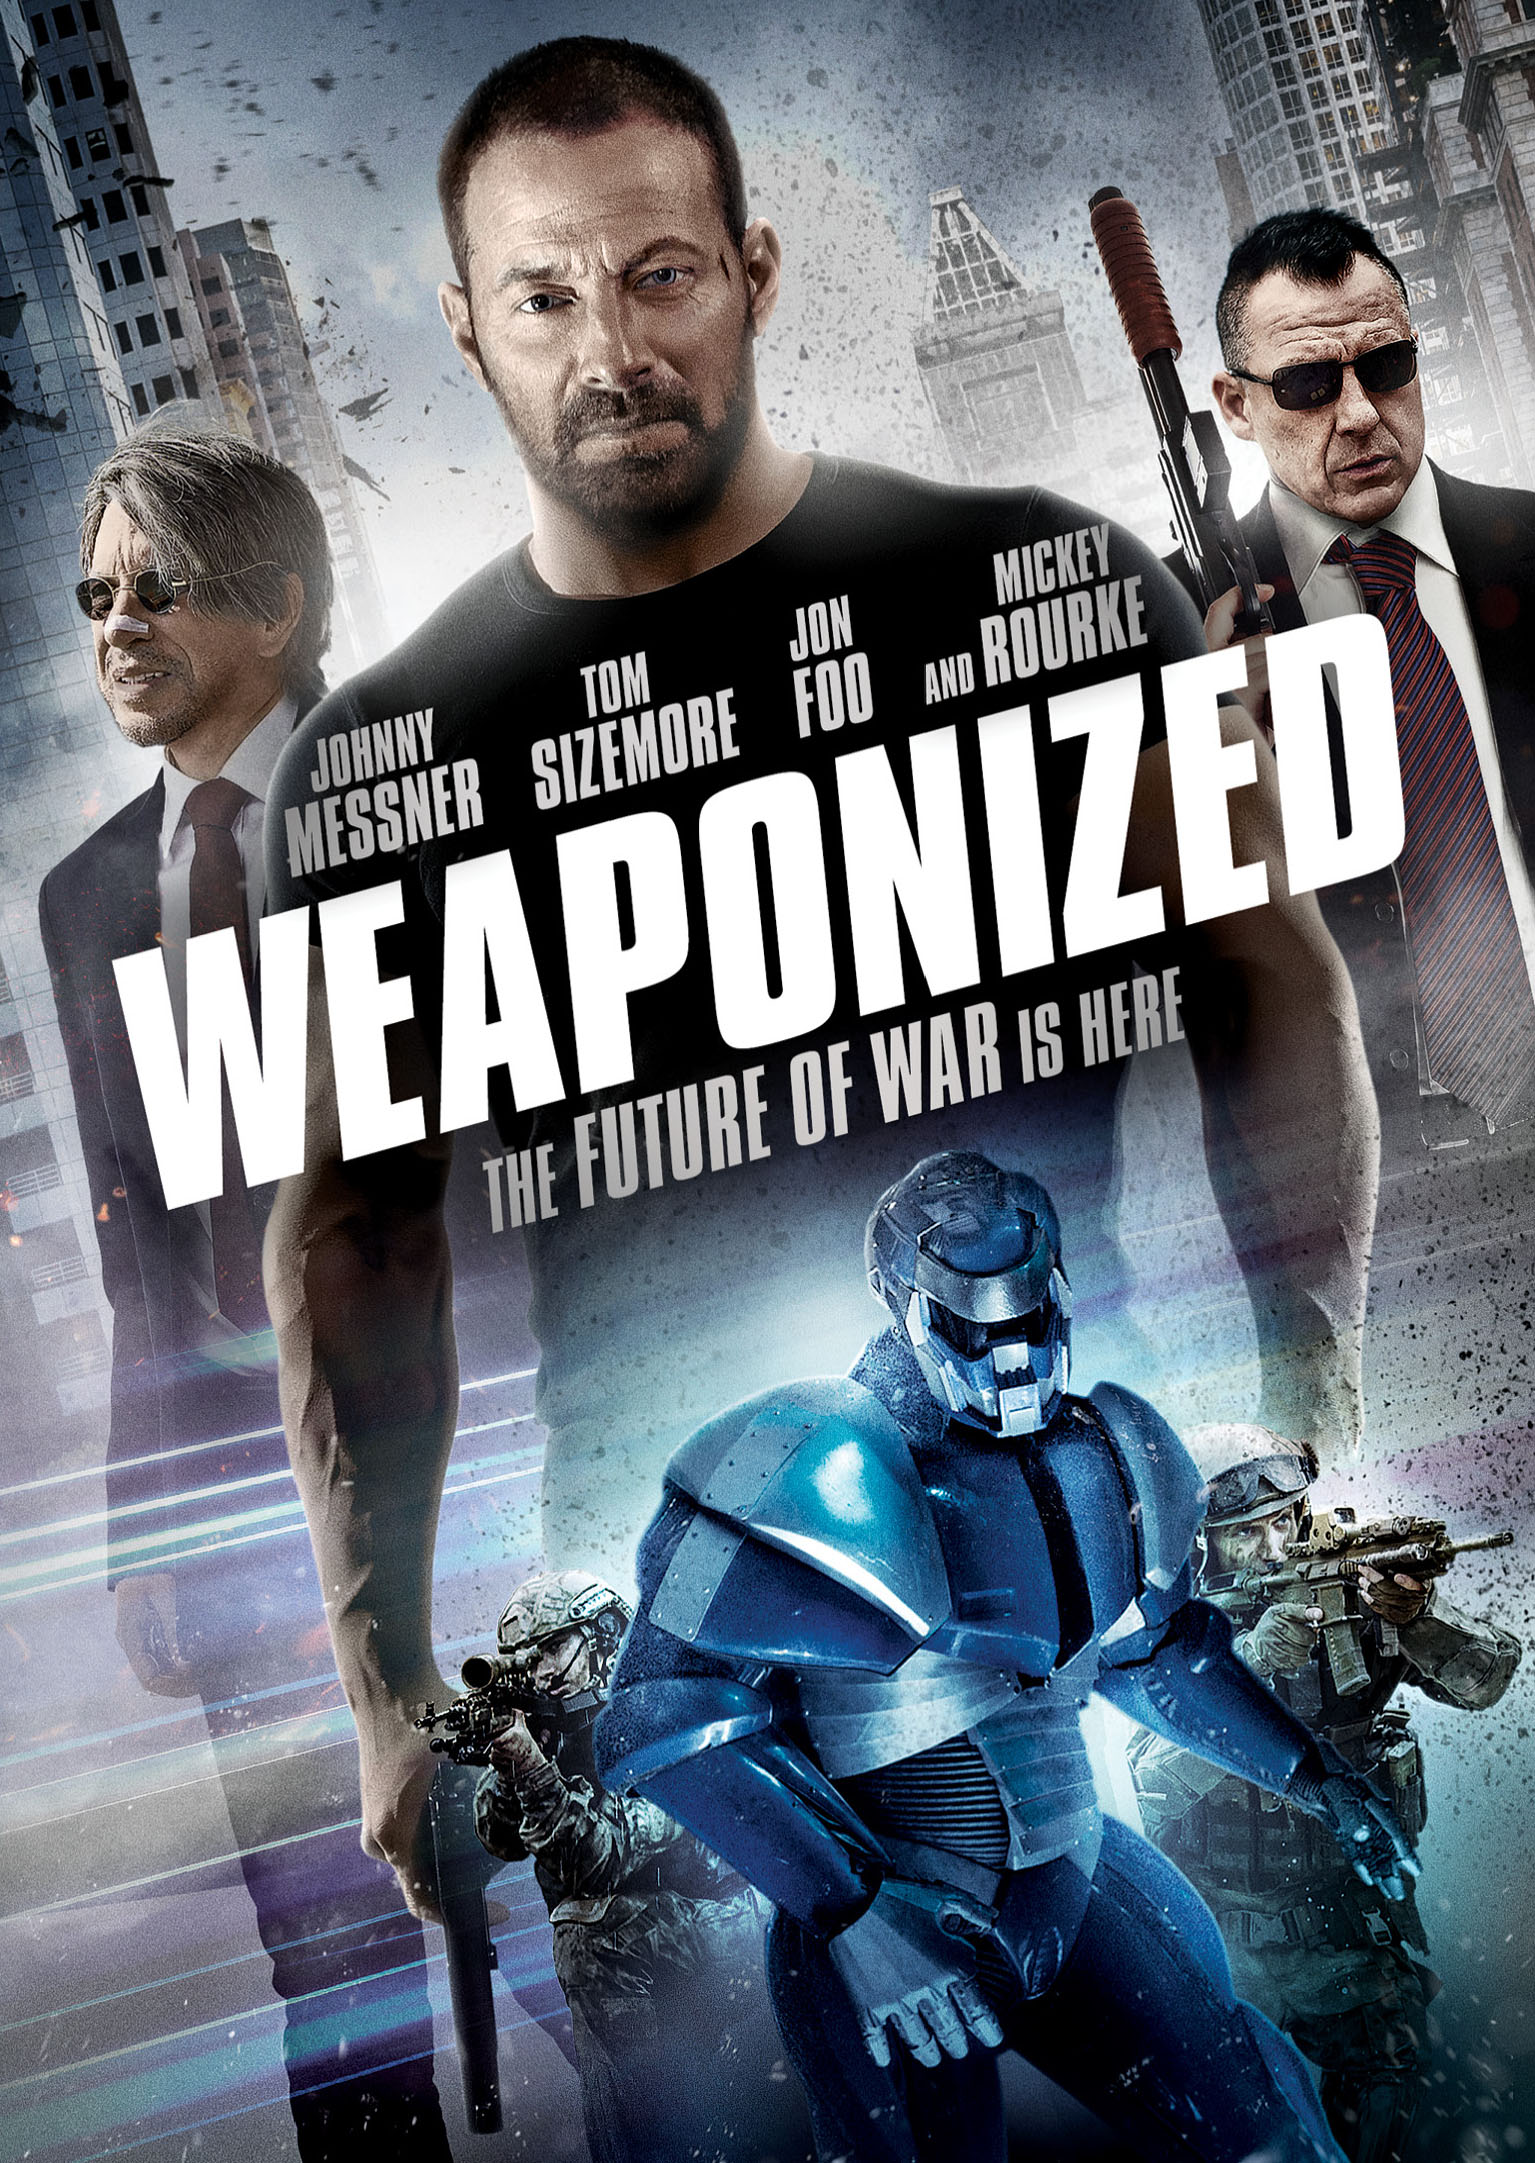 Exclusive Weaponized Clip Shows Tom Sizemore and Johnny Messner Fighting the War on Terror